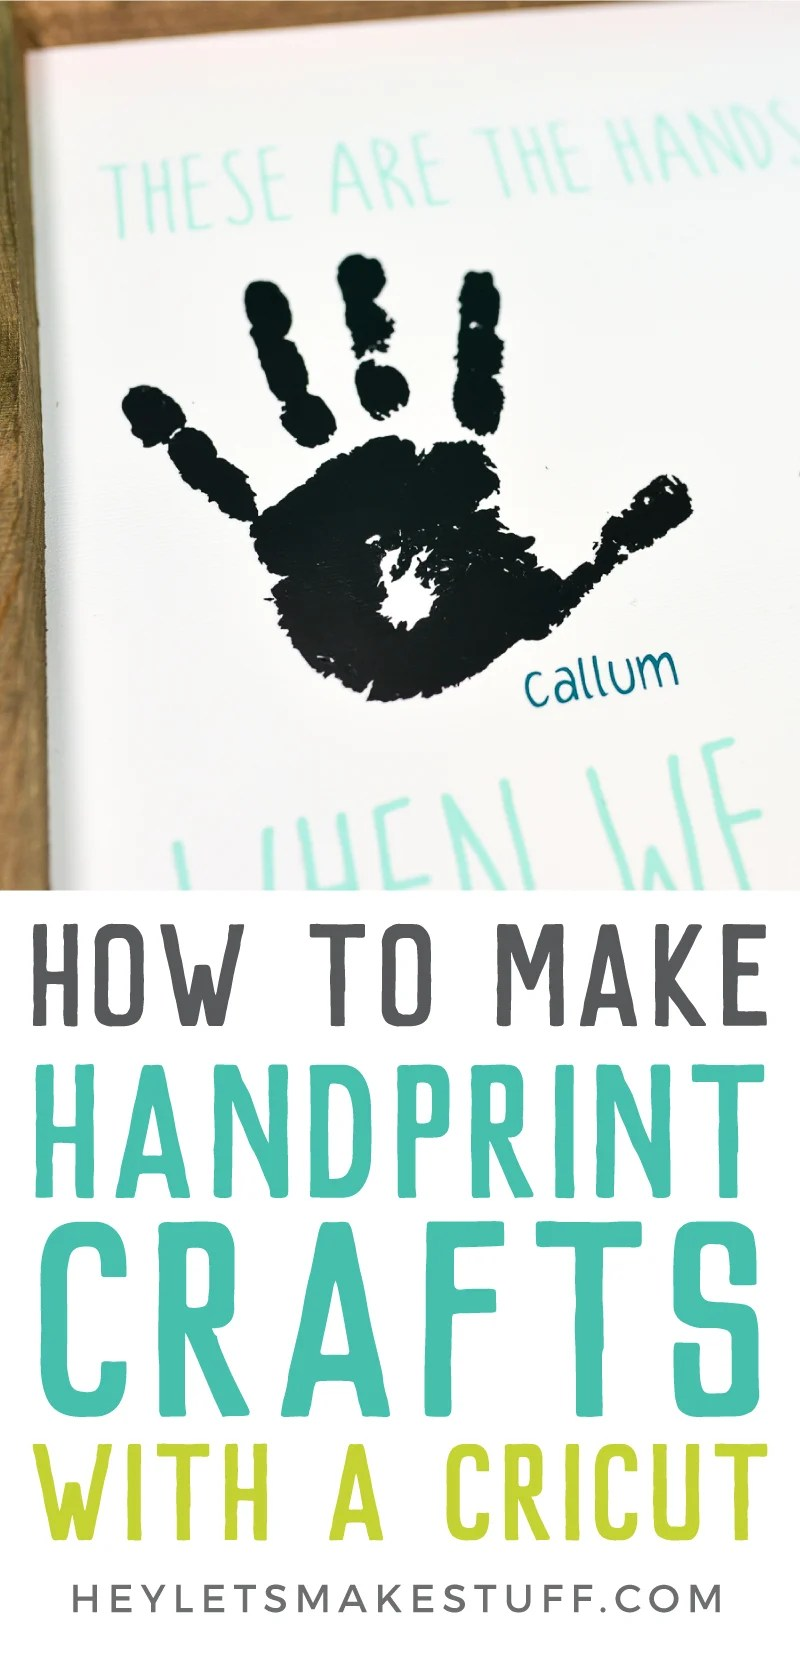 If you're looking for gift idea from your kids, this handprint craft you can make using your Cricut Explore or Maker is perfect! Learn how to digitize a handprint so you can use it in handprint crafts for all sorts of gift ideas. Today we're using it to make a Mother's Day sign, but it's also great for Father's Day, Grandparents' Day, Christmas, and more.  via @heyletsmakestuf